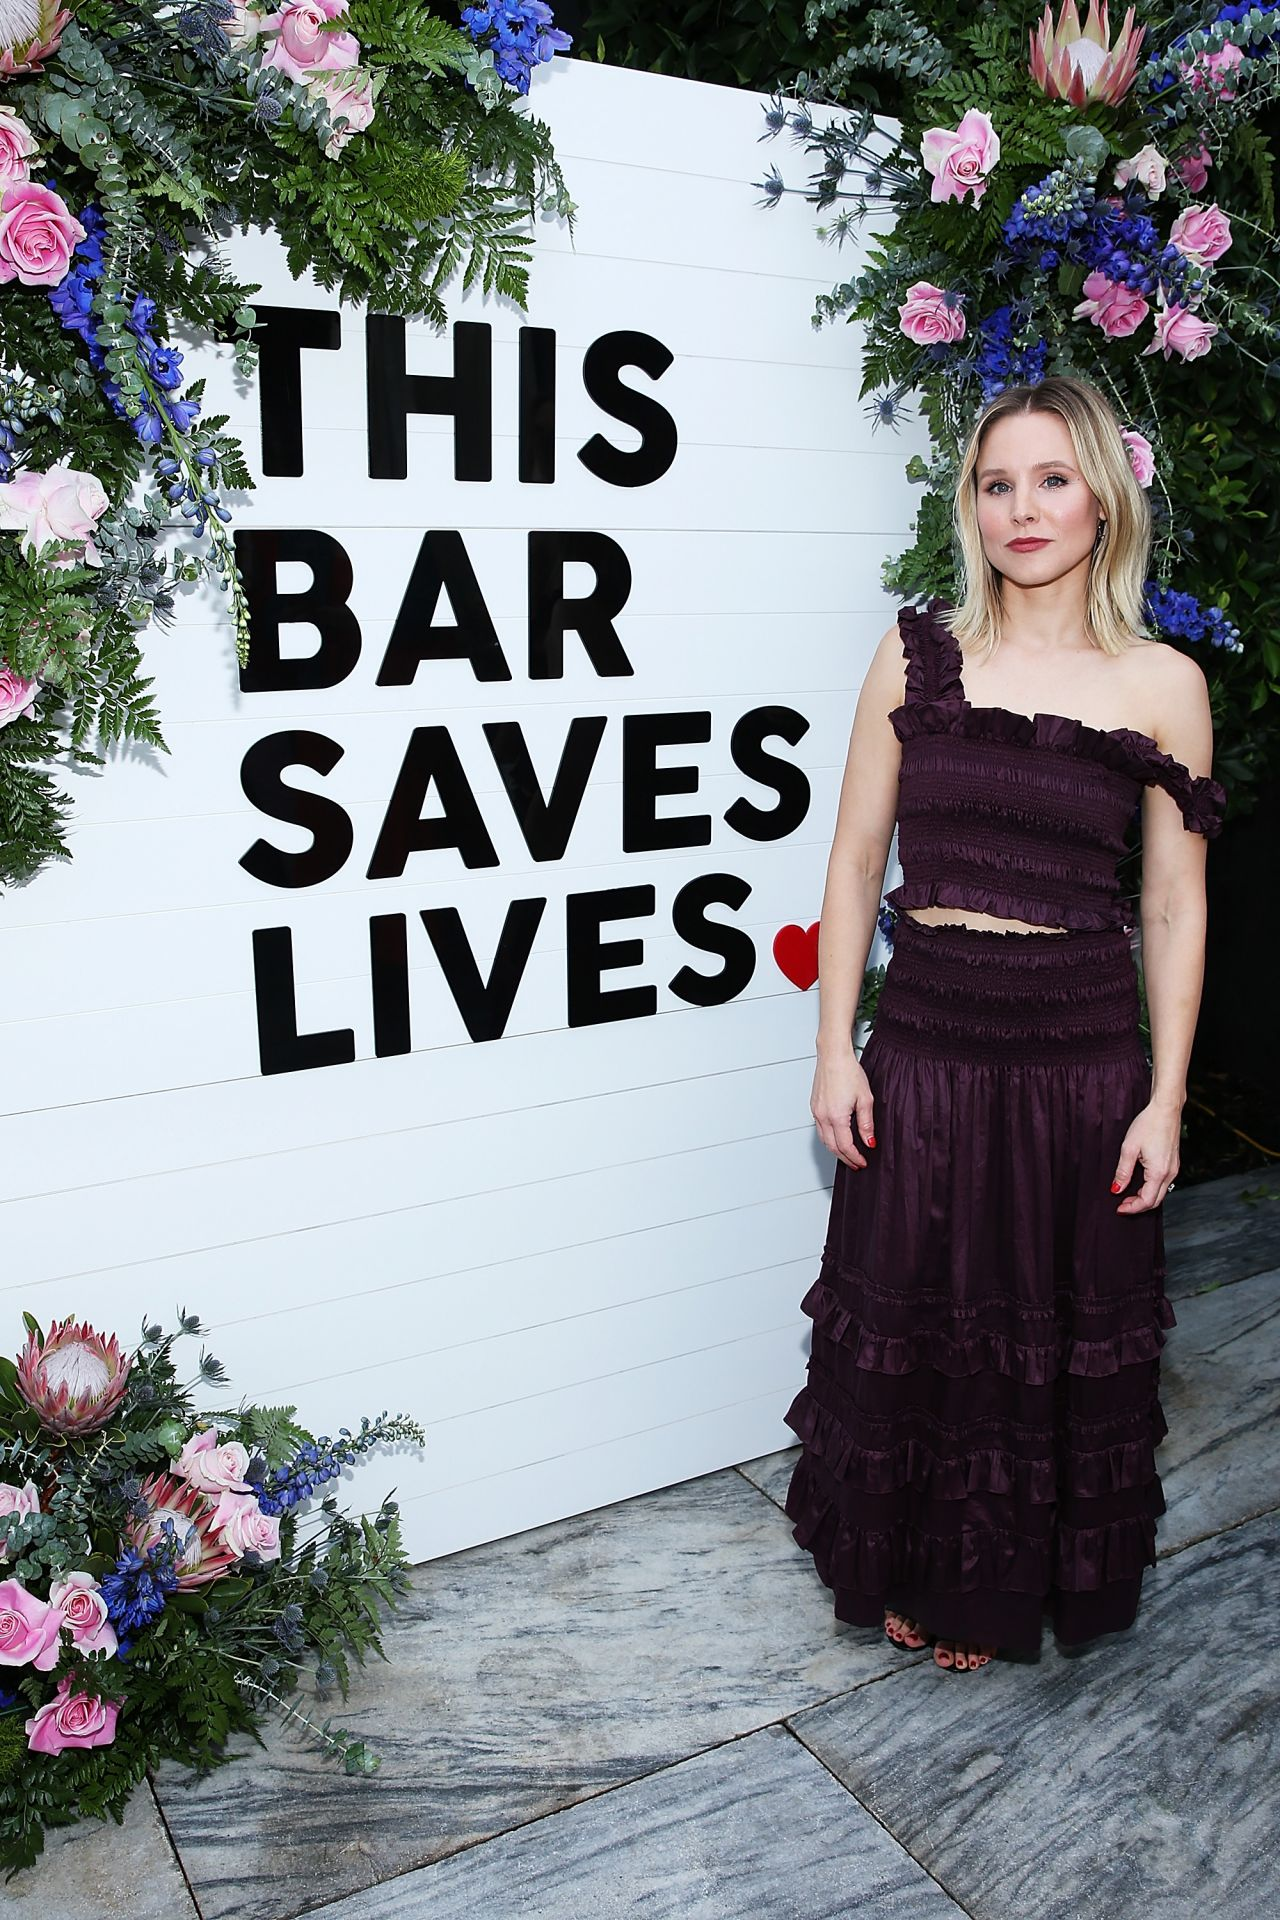 http://celebmafia.com/wp-content/uploads/2018/04/kristen-bell-this-bar-saves-lives-press-launch-party-in-west-hollywood-5.jpg